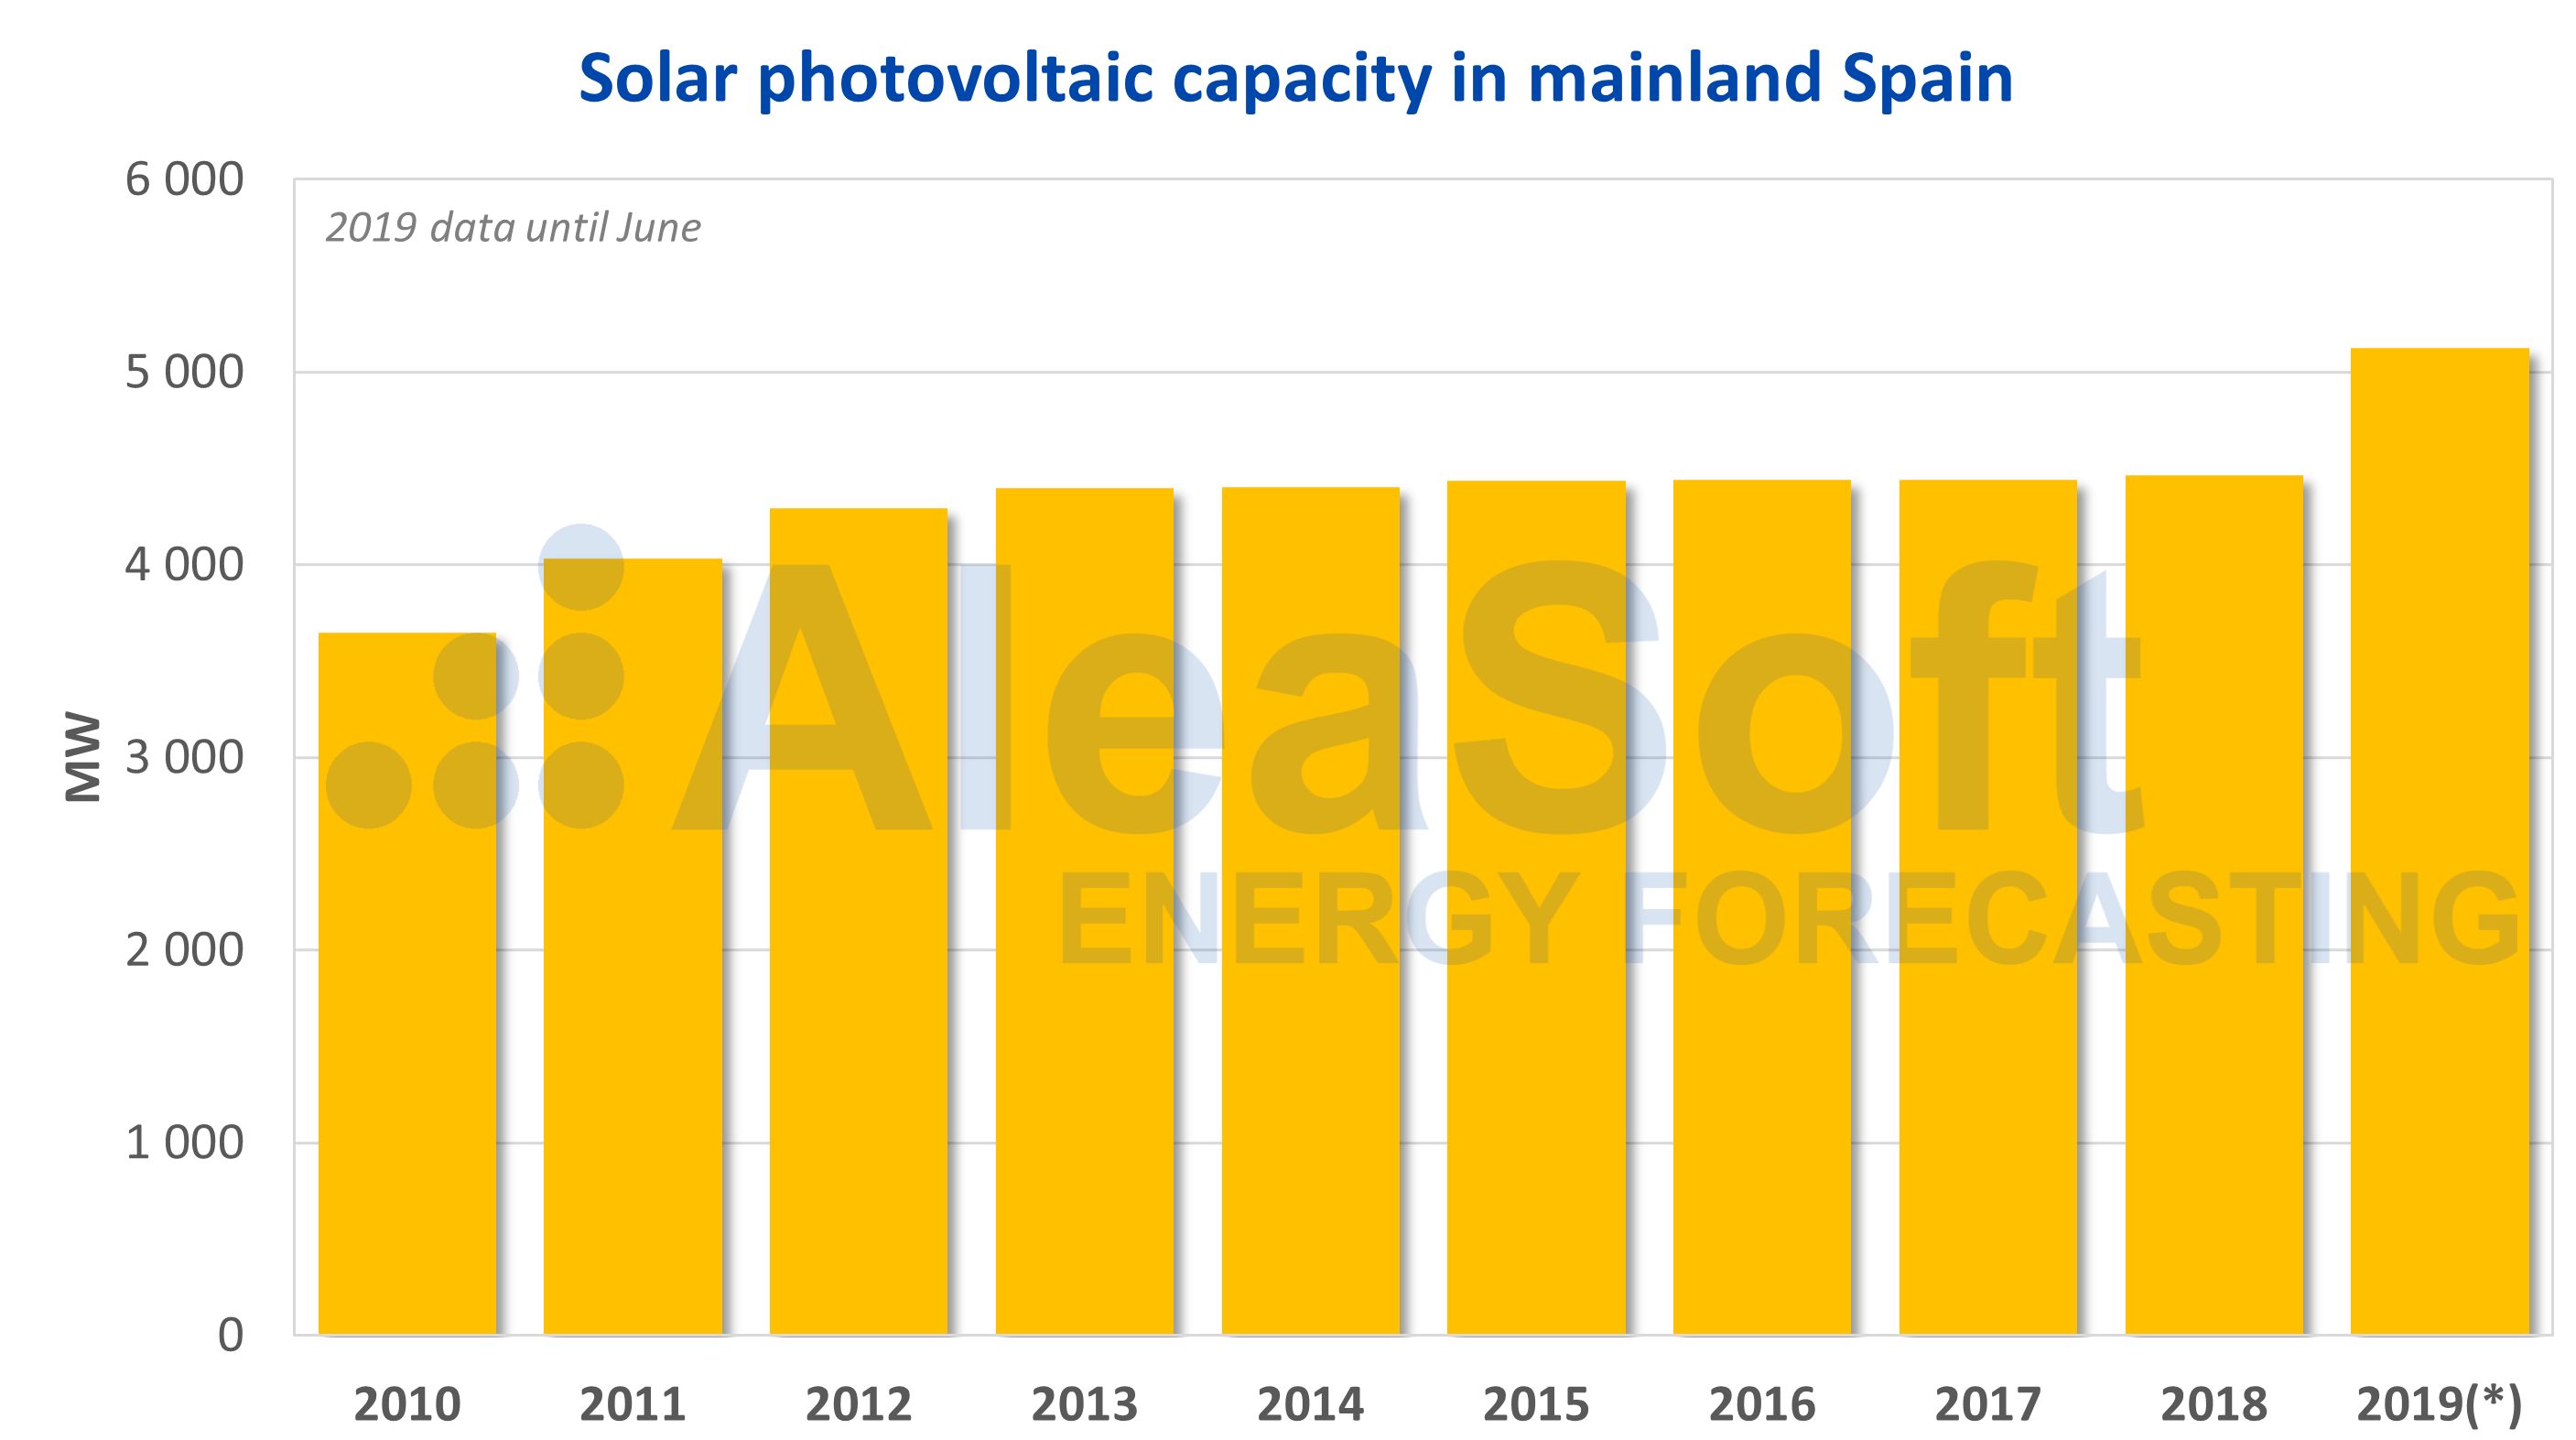 AleaSoft - Solar photovoltaic capacity mainland Spain